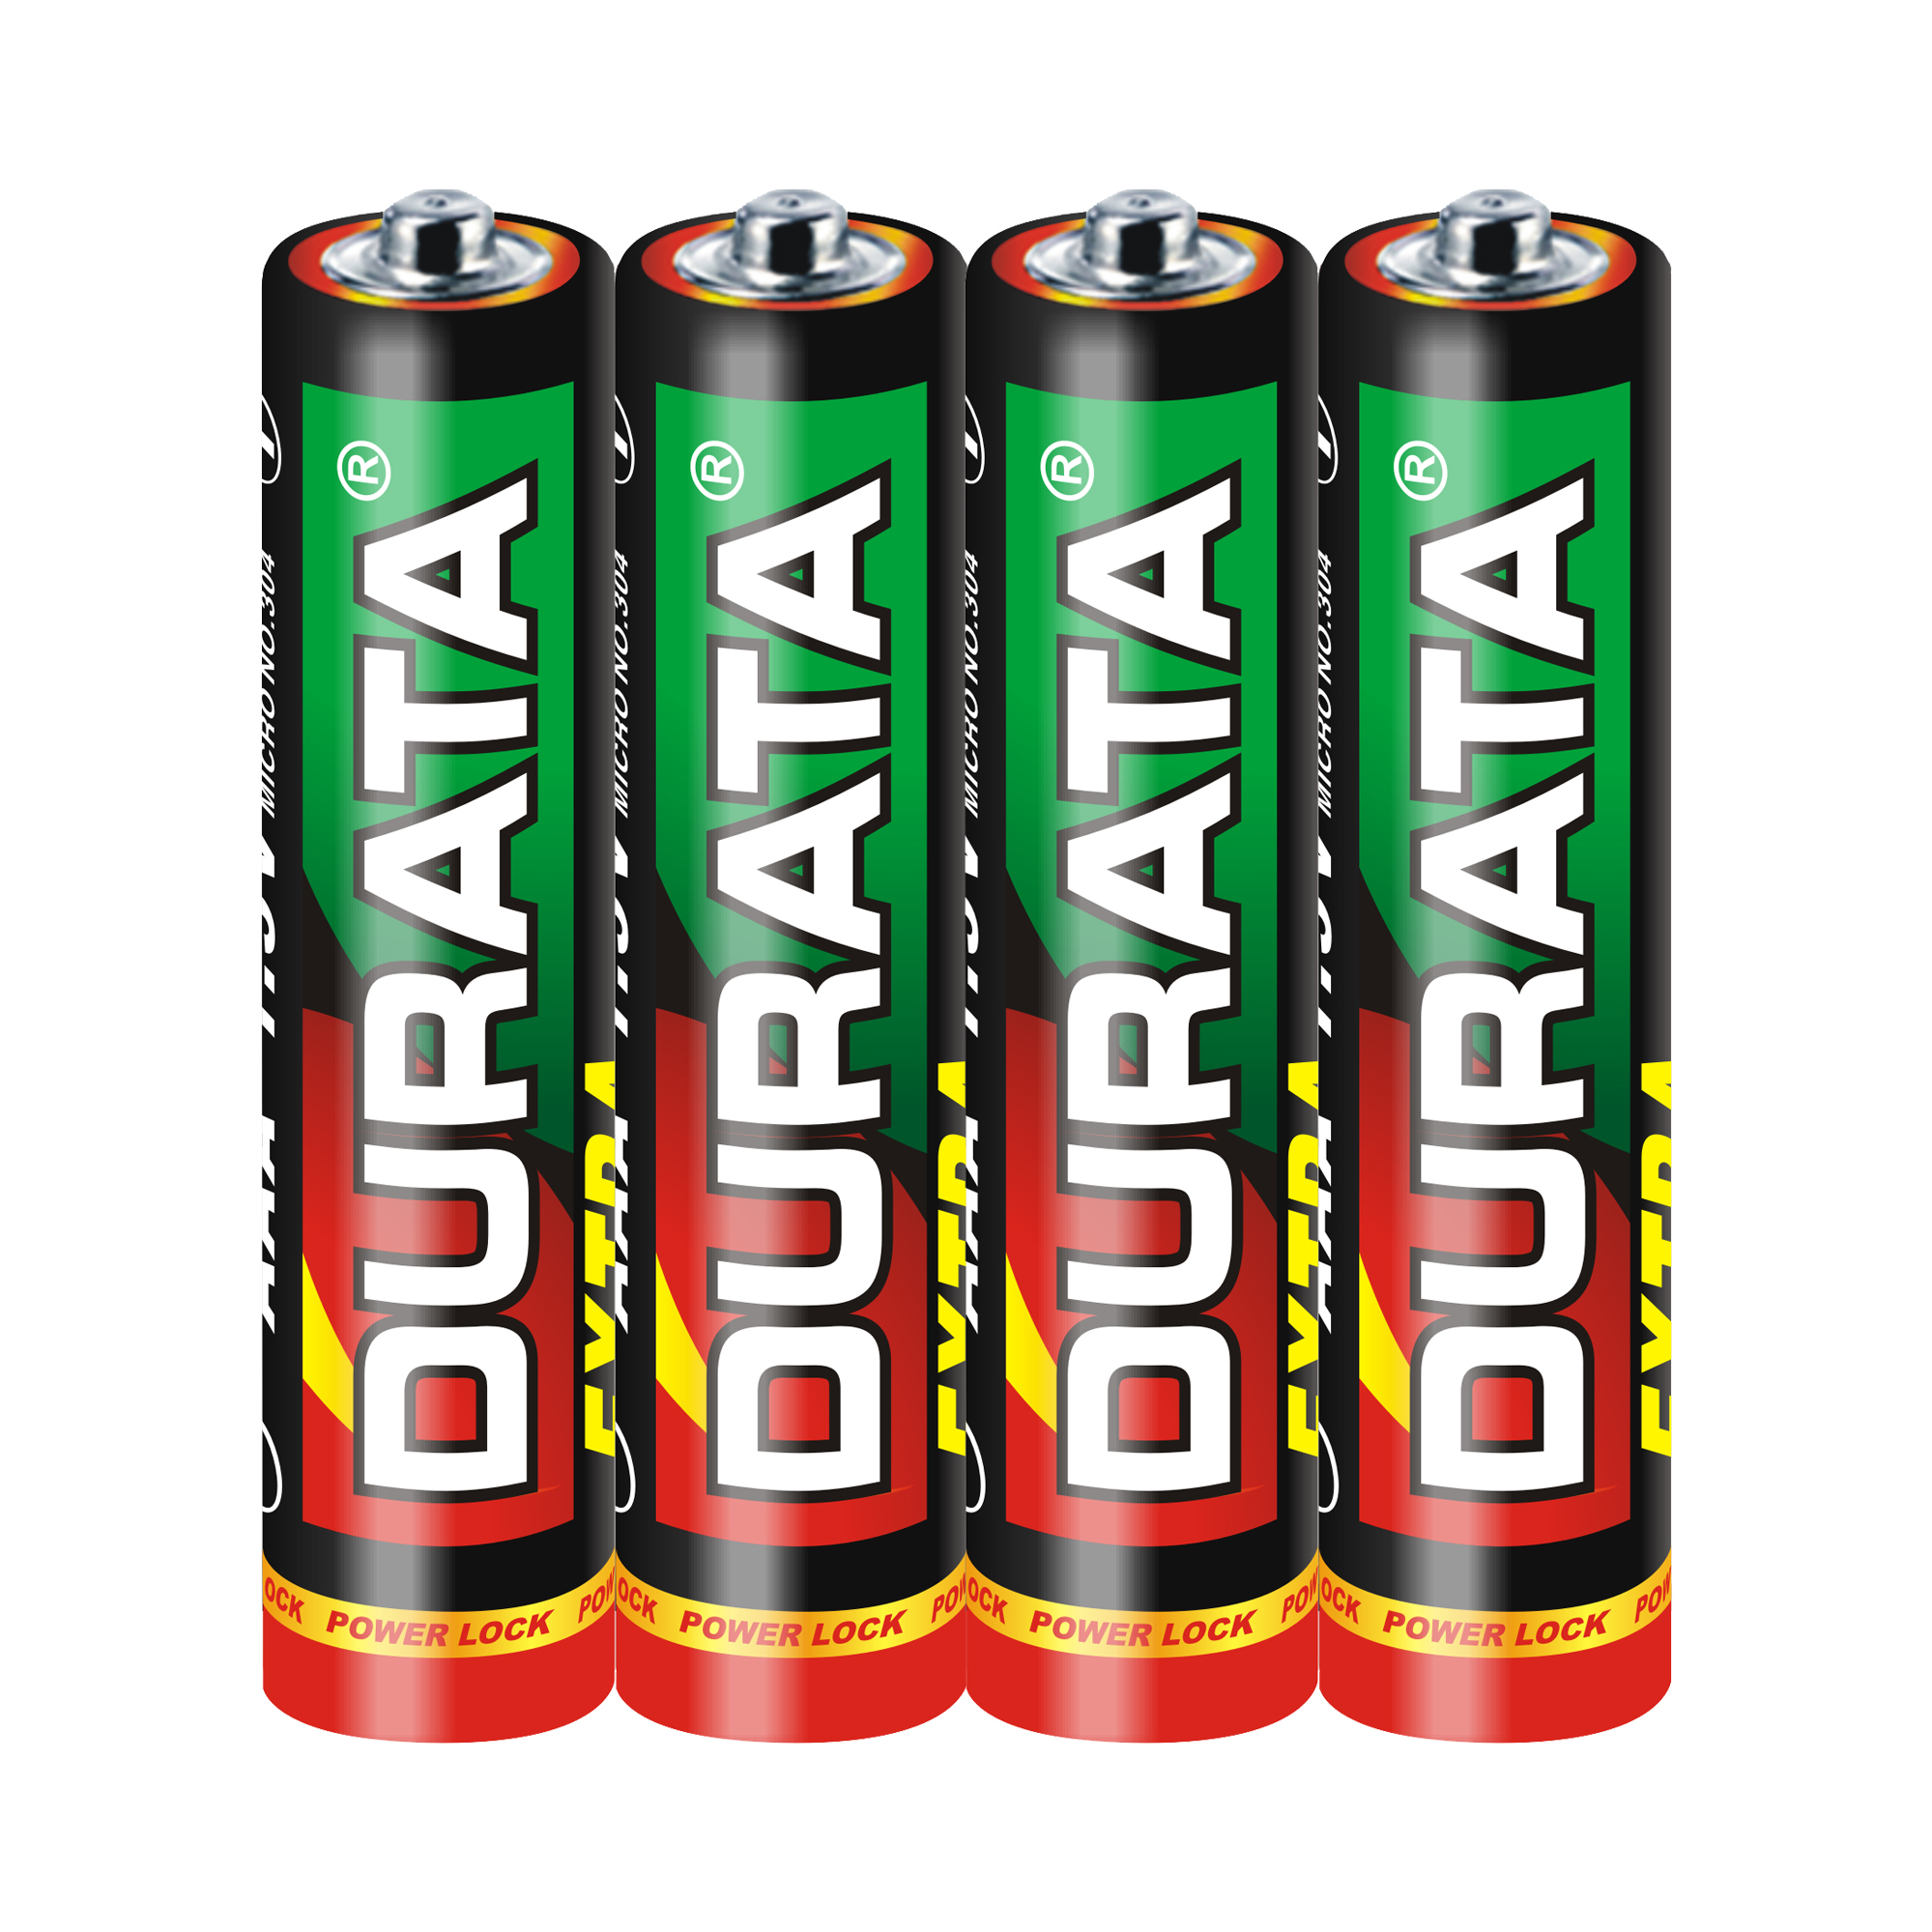 DURATA Size AAA - Shrink Pack 4 Batteries